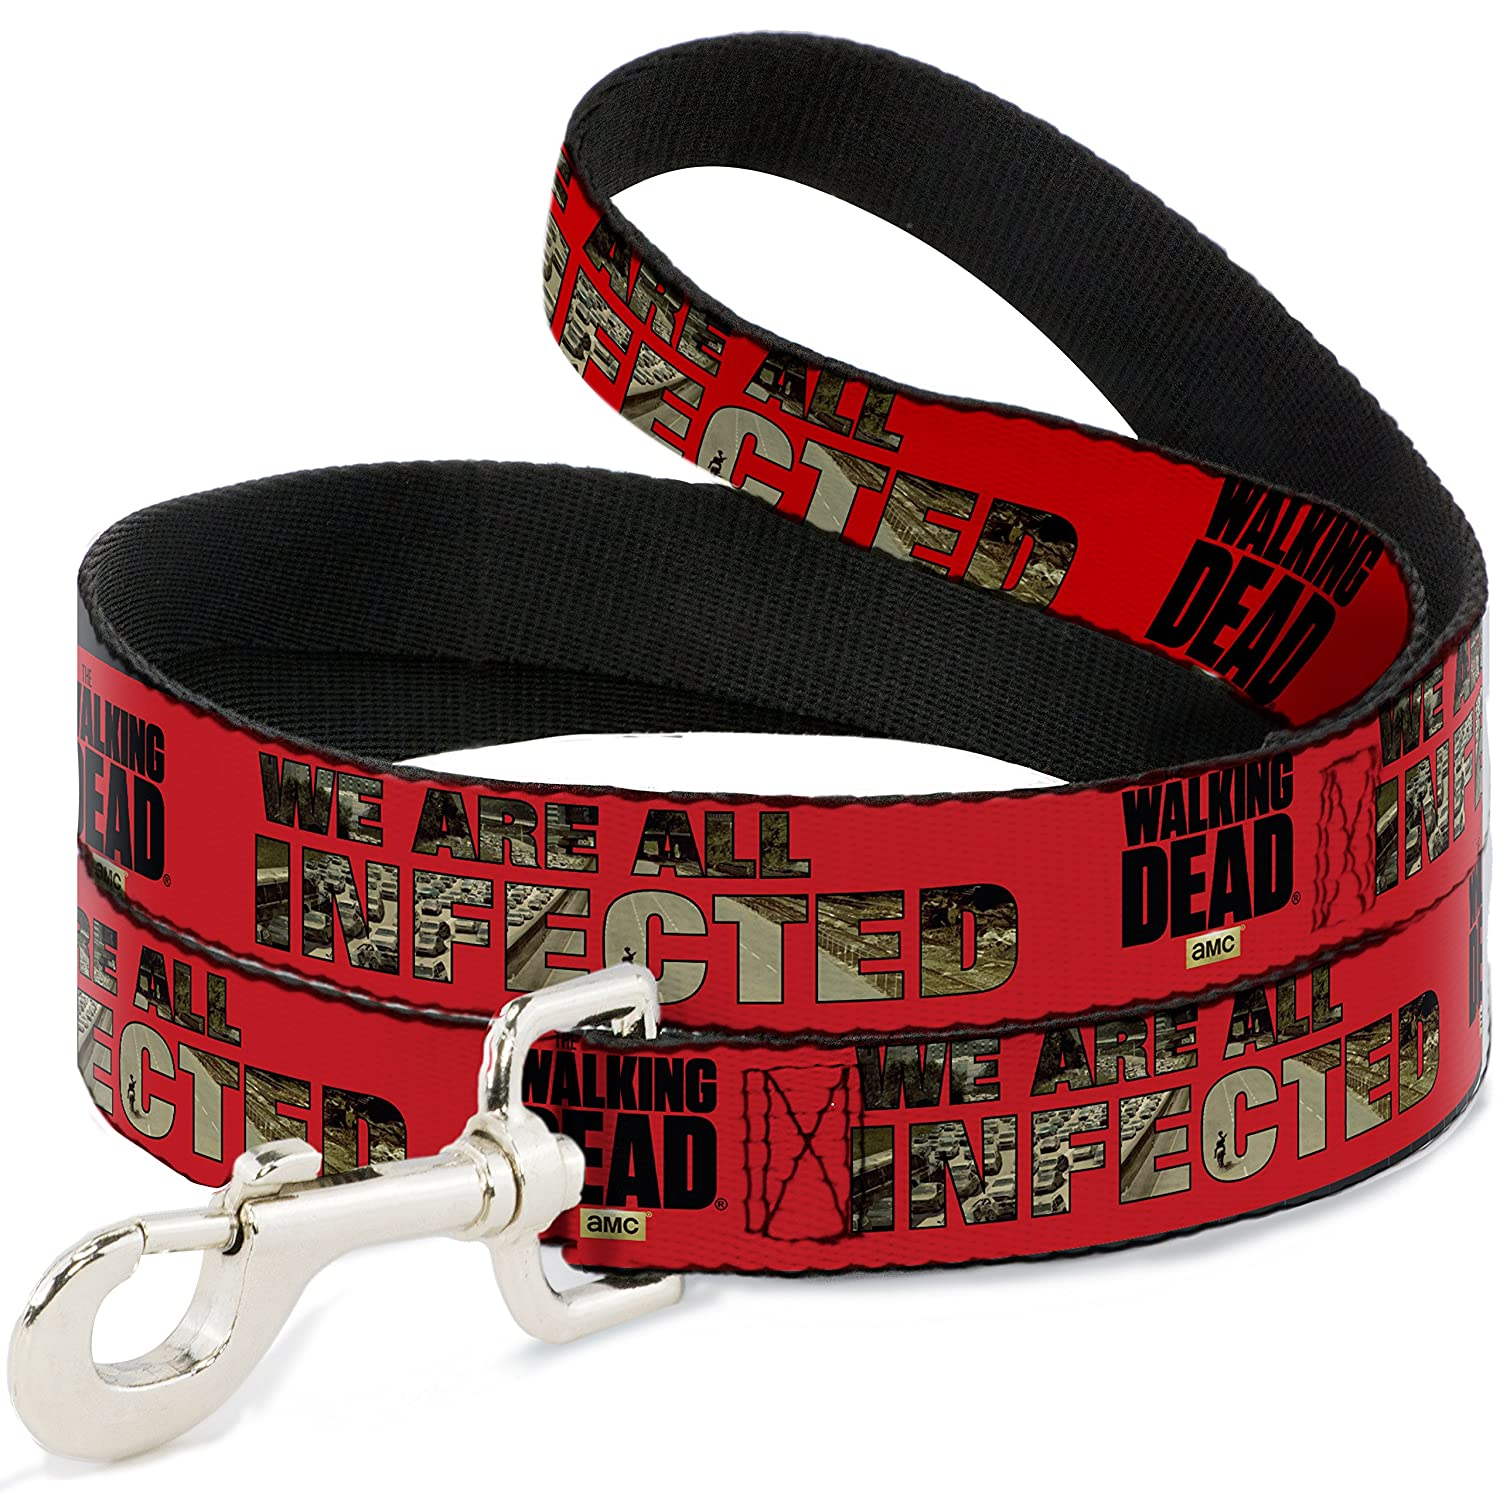 6Ft. Long  1.0 Inches wide Regular Buckle-Down The Walking Dead We are All Infected Red Black  Dog Leash, 6'